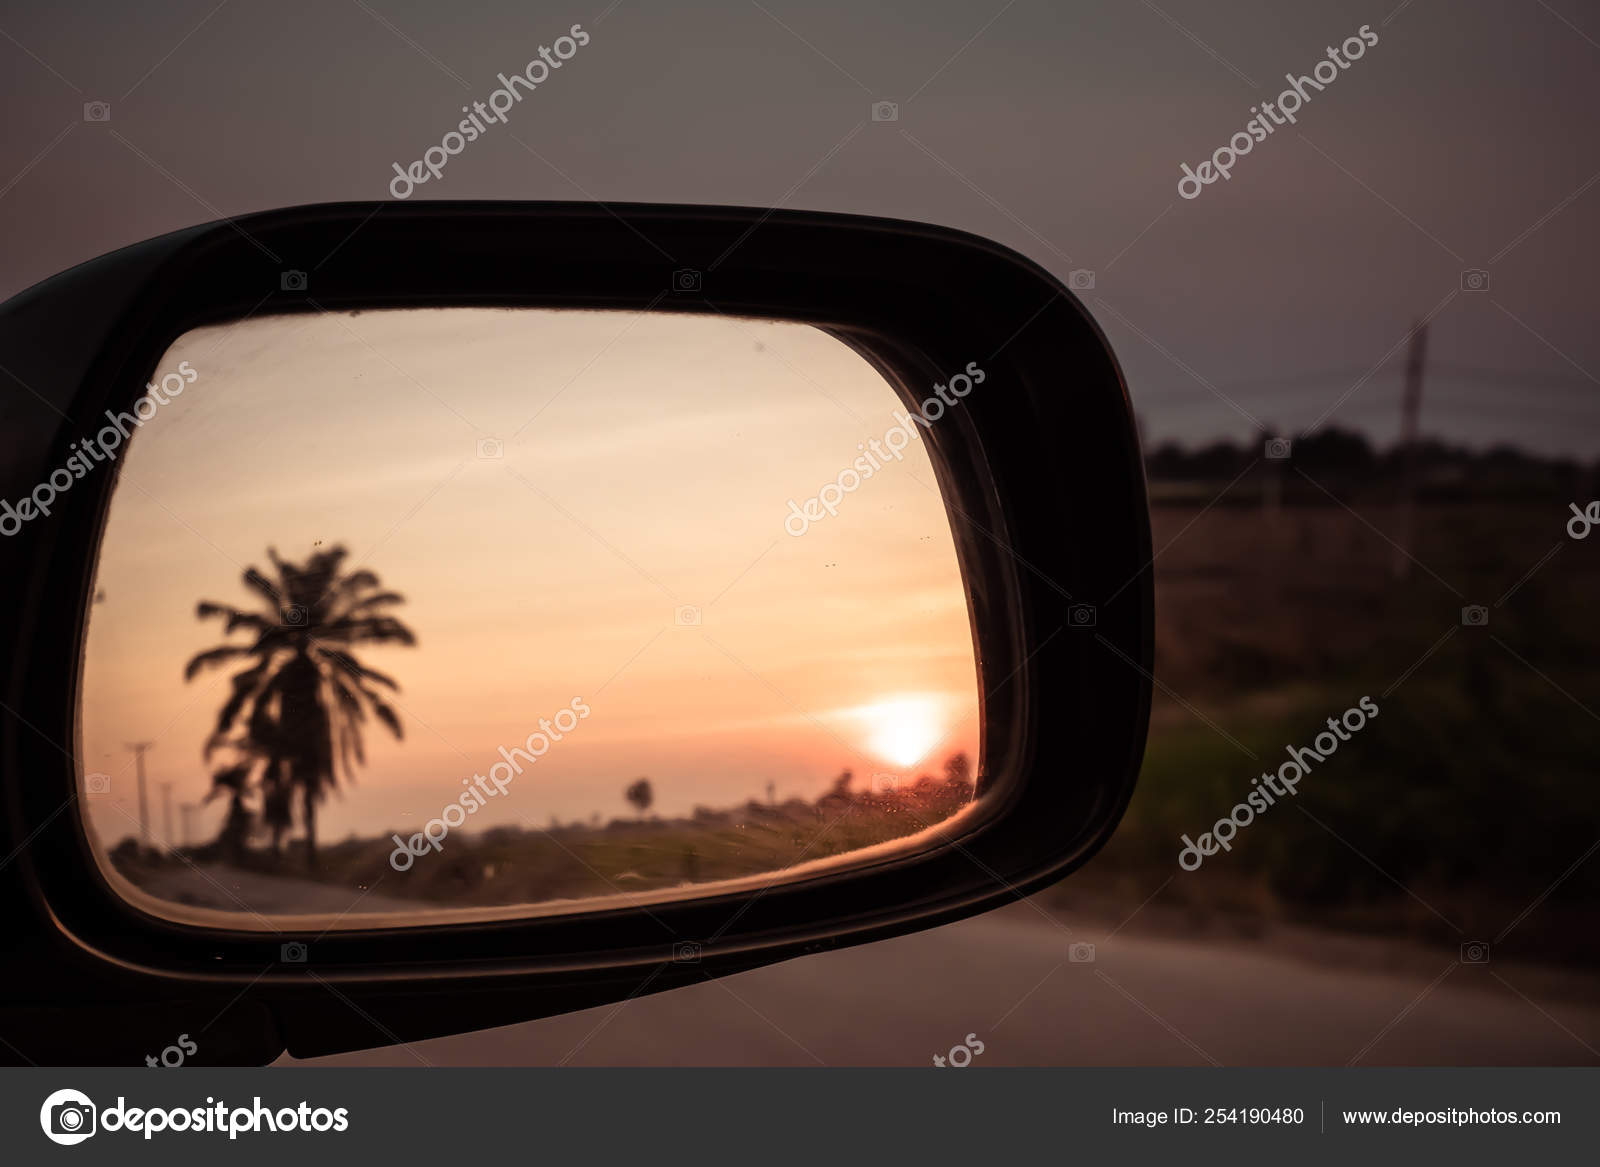 Car Driving Through Field Blur Viewed From Outside Driver Windowat Sunset Concept Idea Background Stock Photo C Nun Prctm Gmail Com 254190480